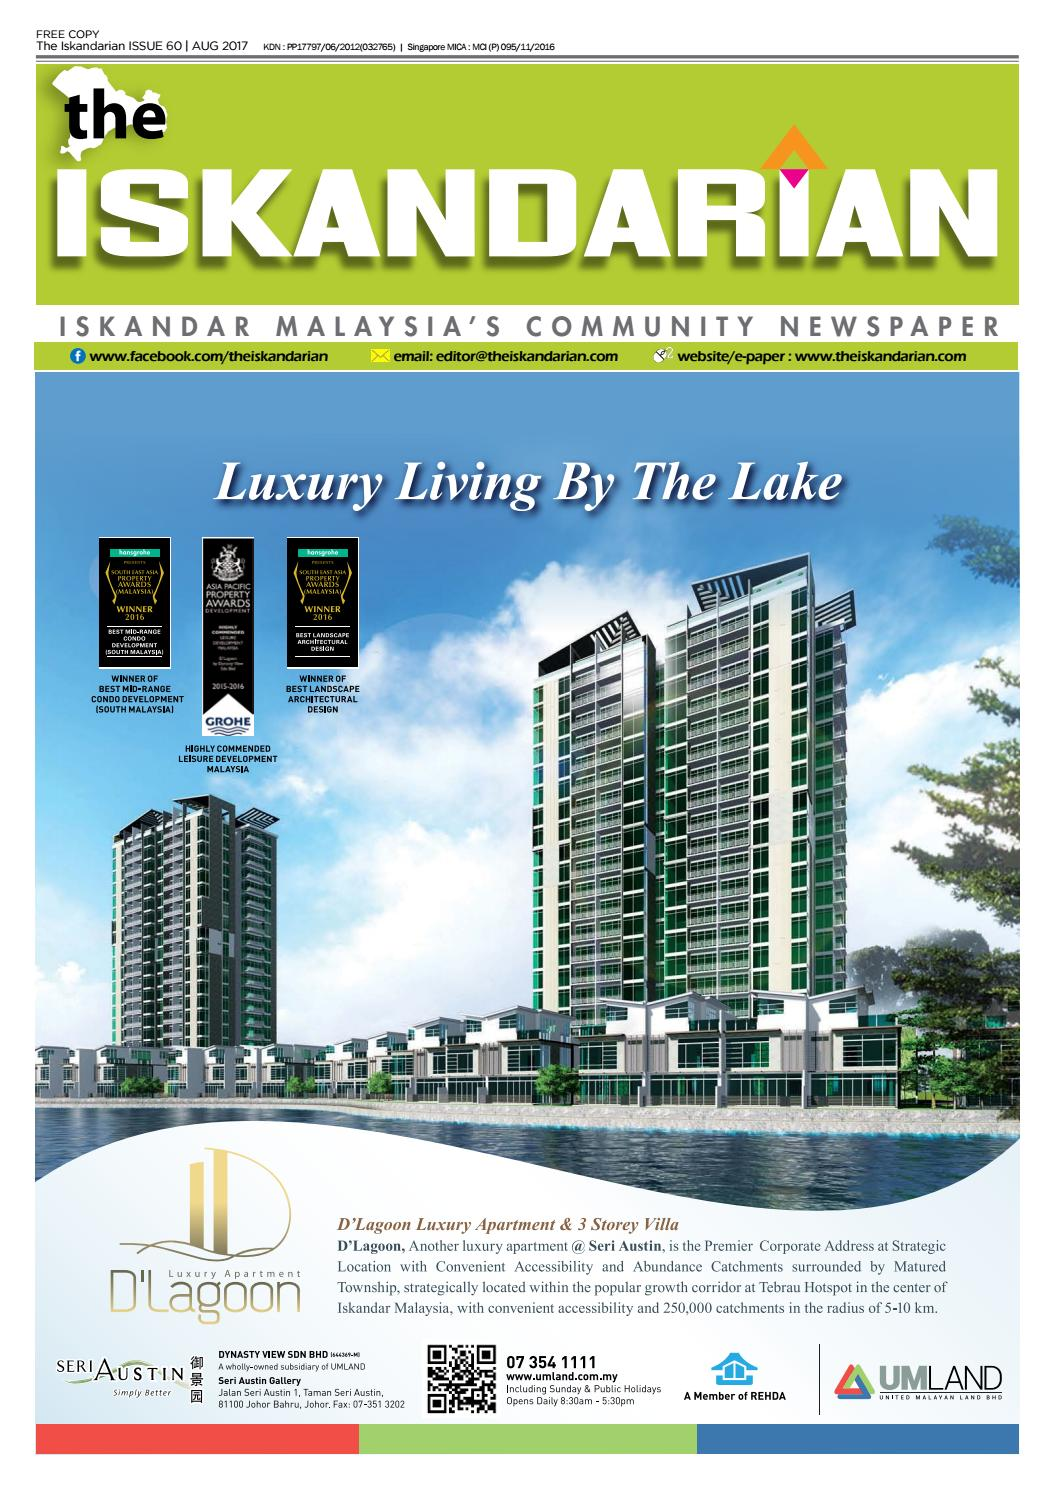 The Iskandarian August 2017 Issue by The Iskandarian-WAVES